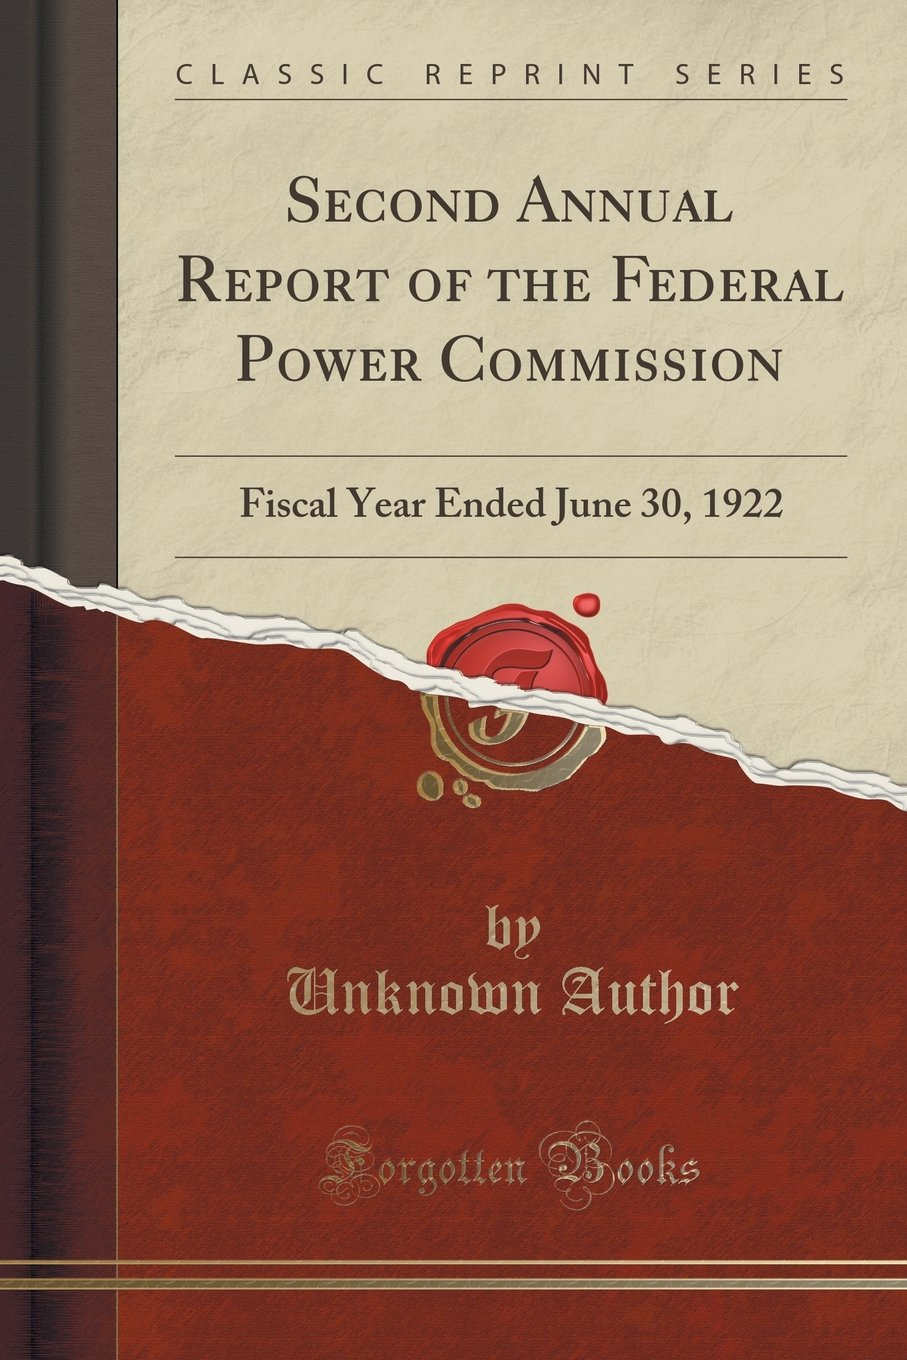 Download Second Annual Report of the Federal Power Commission: Fiscal Year Ended June 30, 1922 (Classic Reprint) ebook